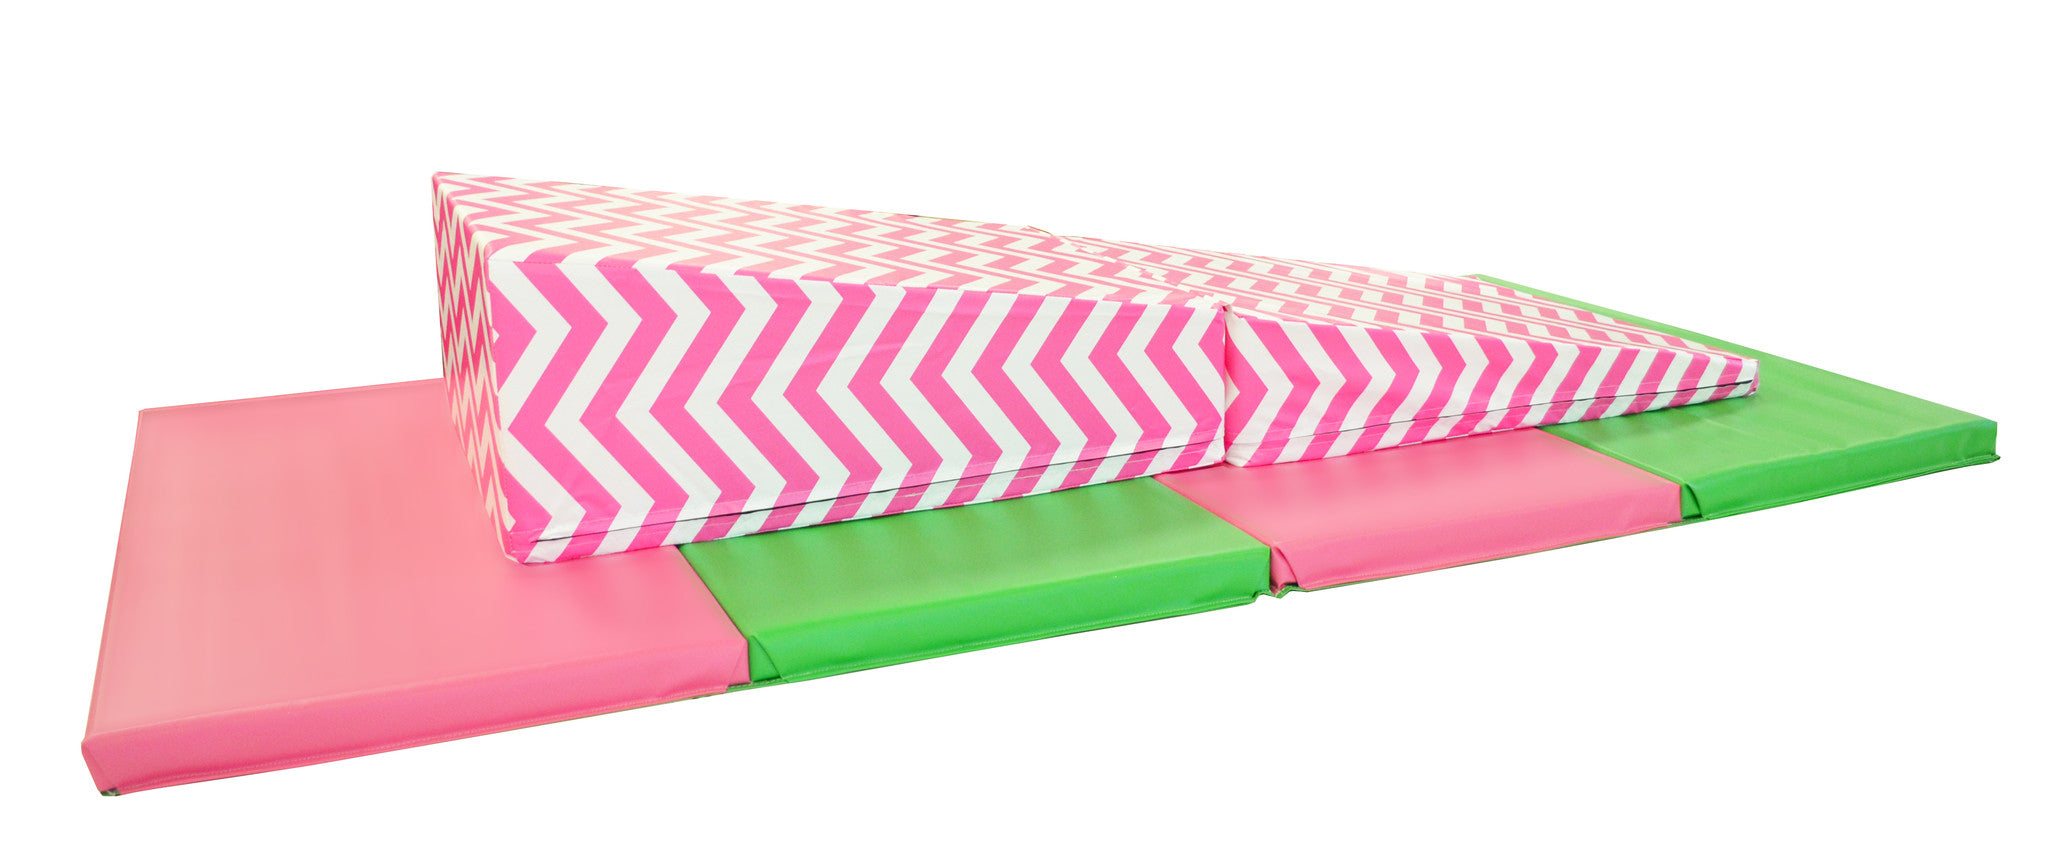 "4' x 8' x 2"" Pink Green gymnastics Folding Mat and Pink Chevron Incline Combo"